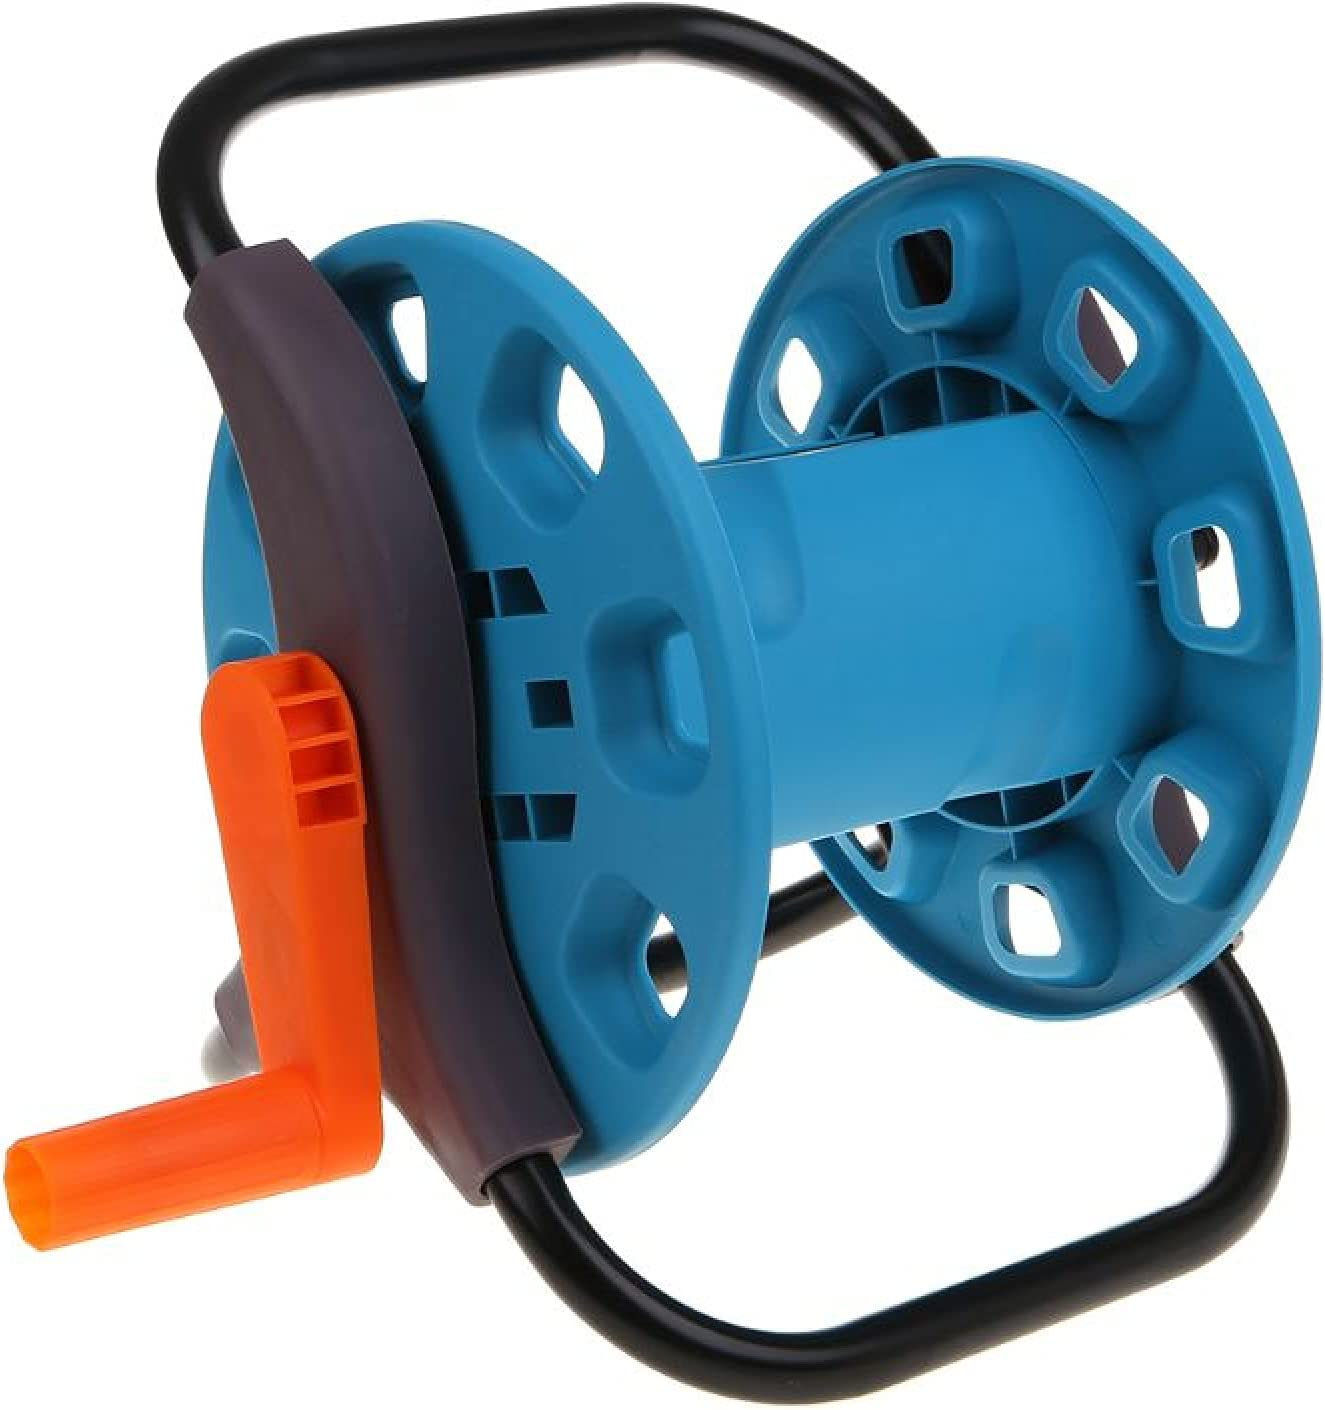 YFBY Water Hose Reel Outlet sale Popular overseas feature Mounted Wall Gard